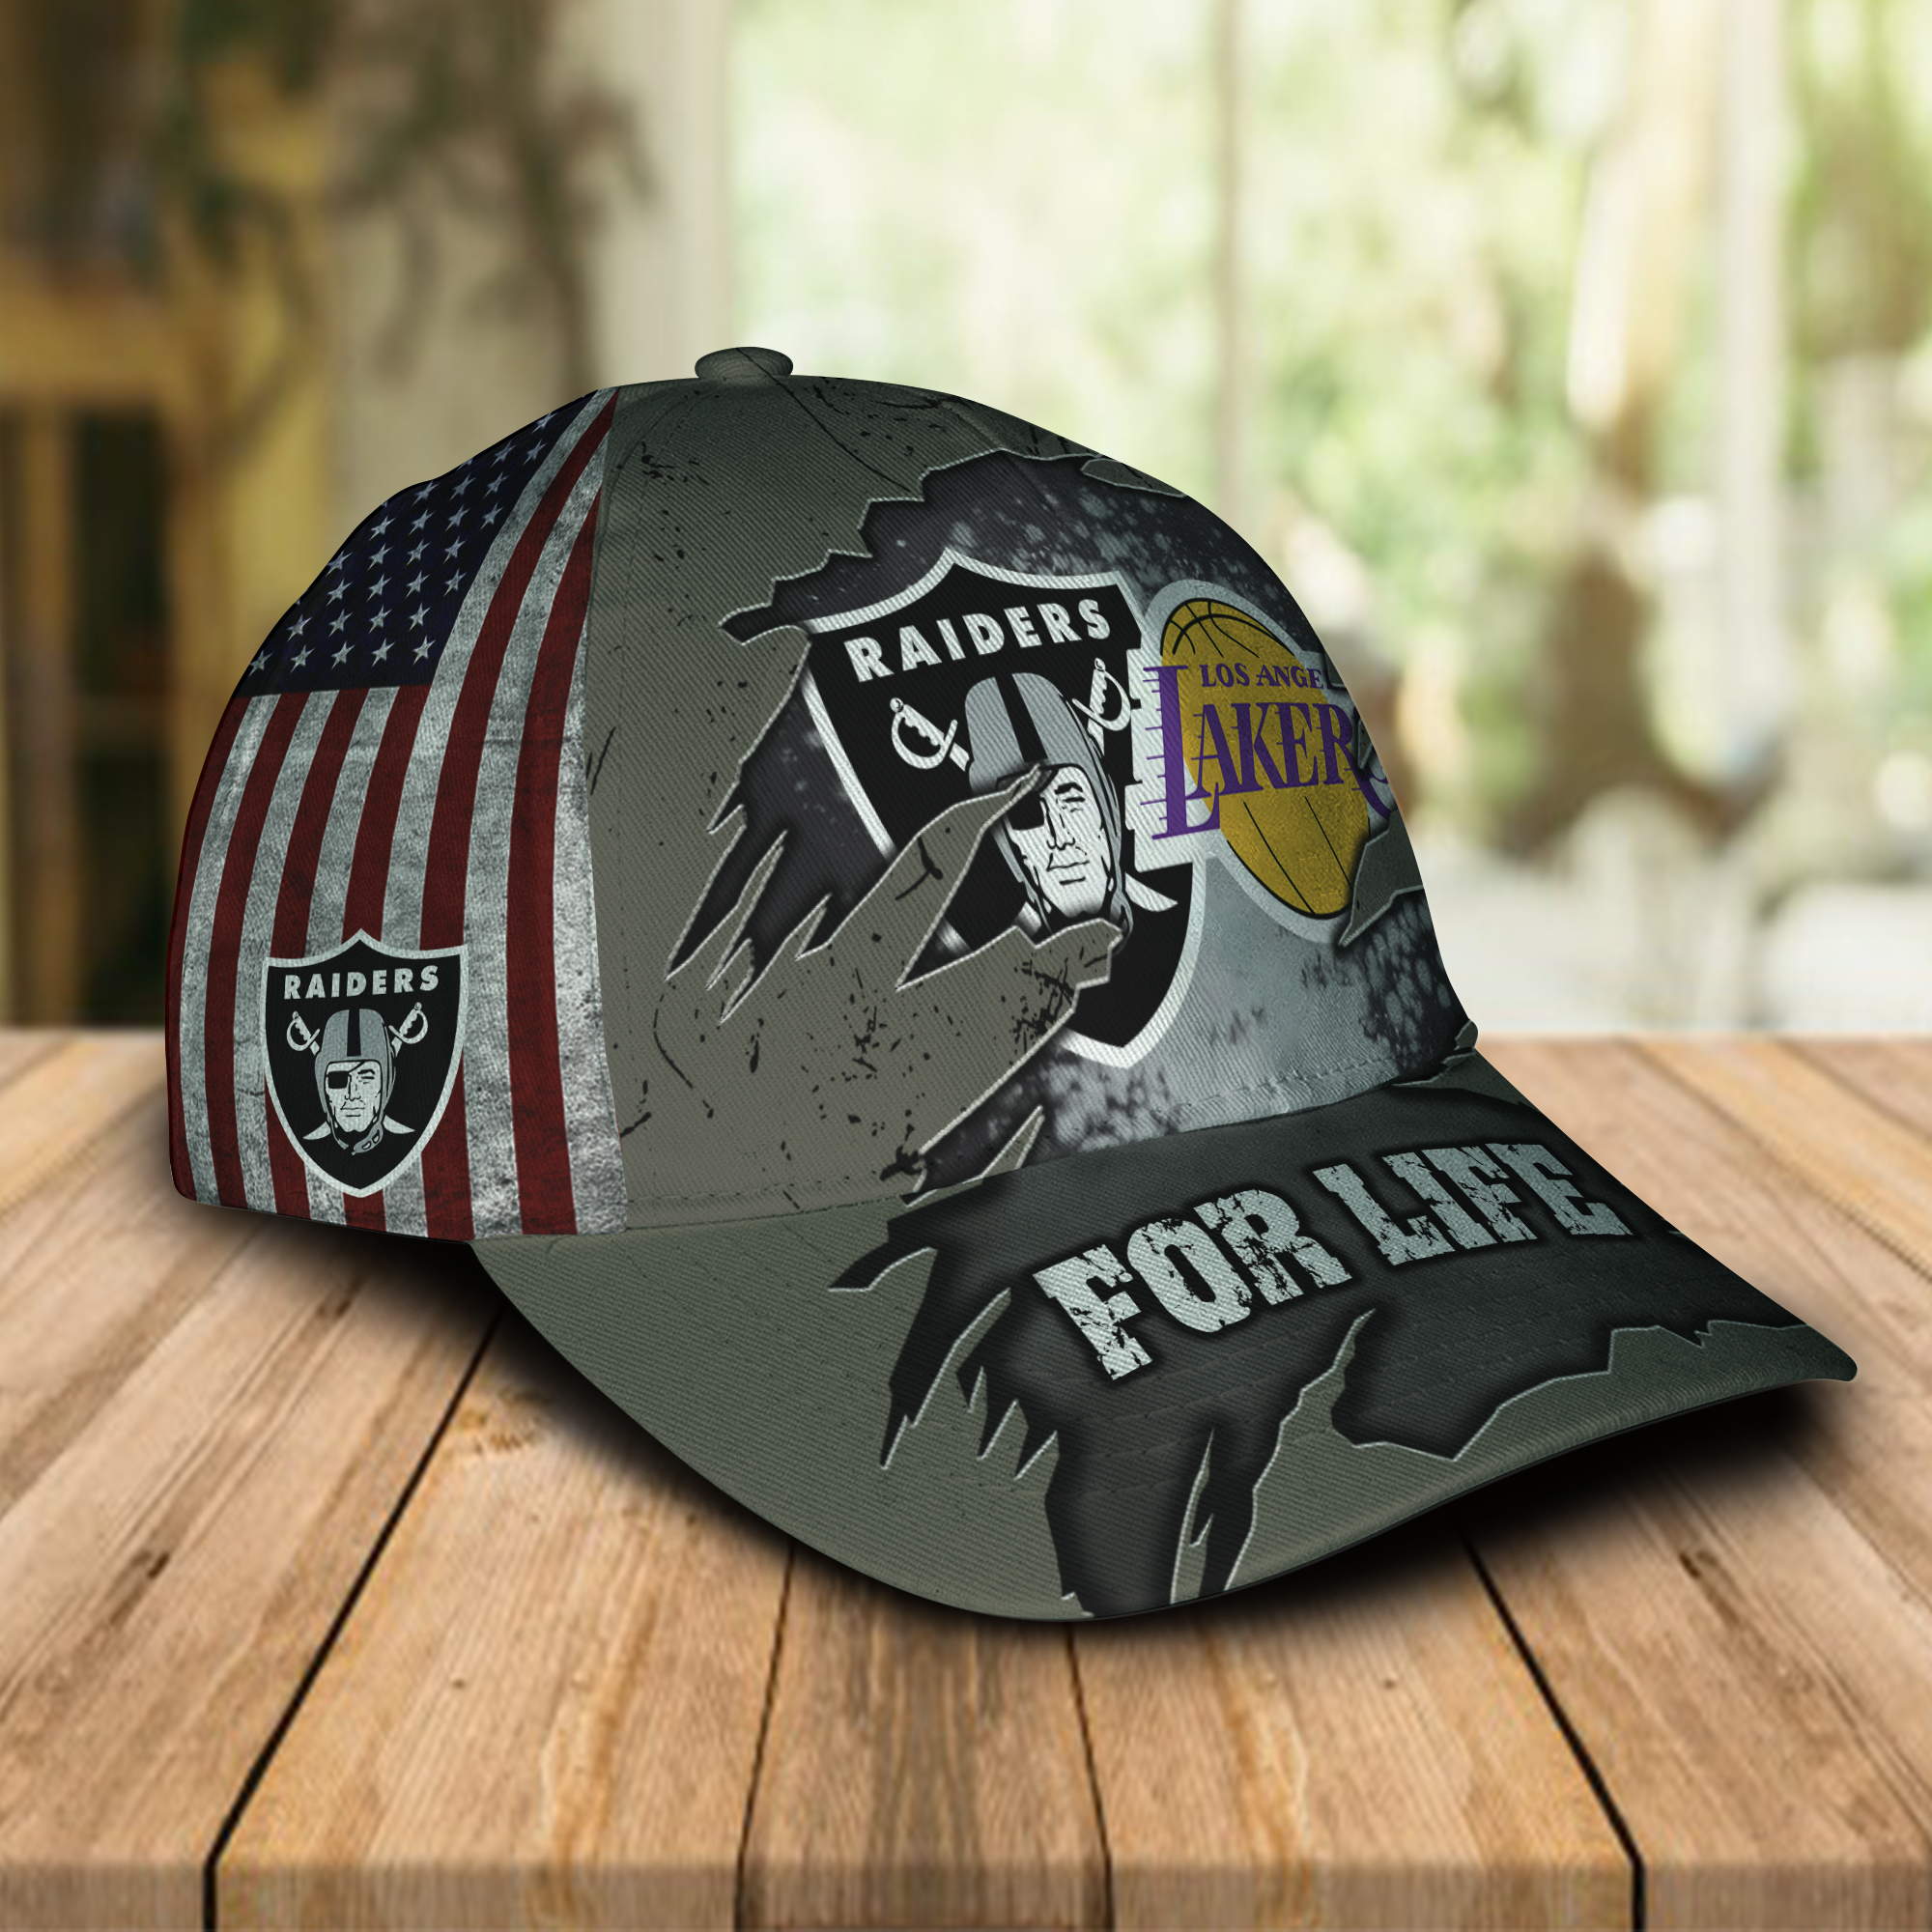 Las Vegas Raiders And Los Angeles Lakers For Life-1